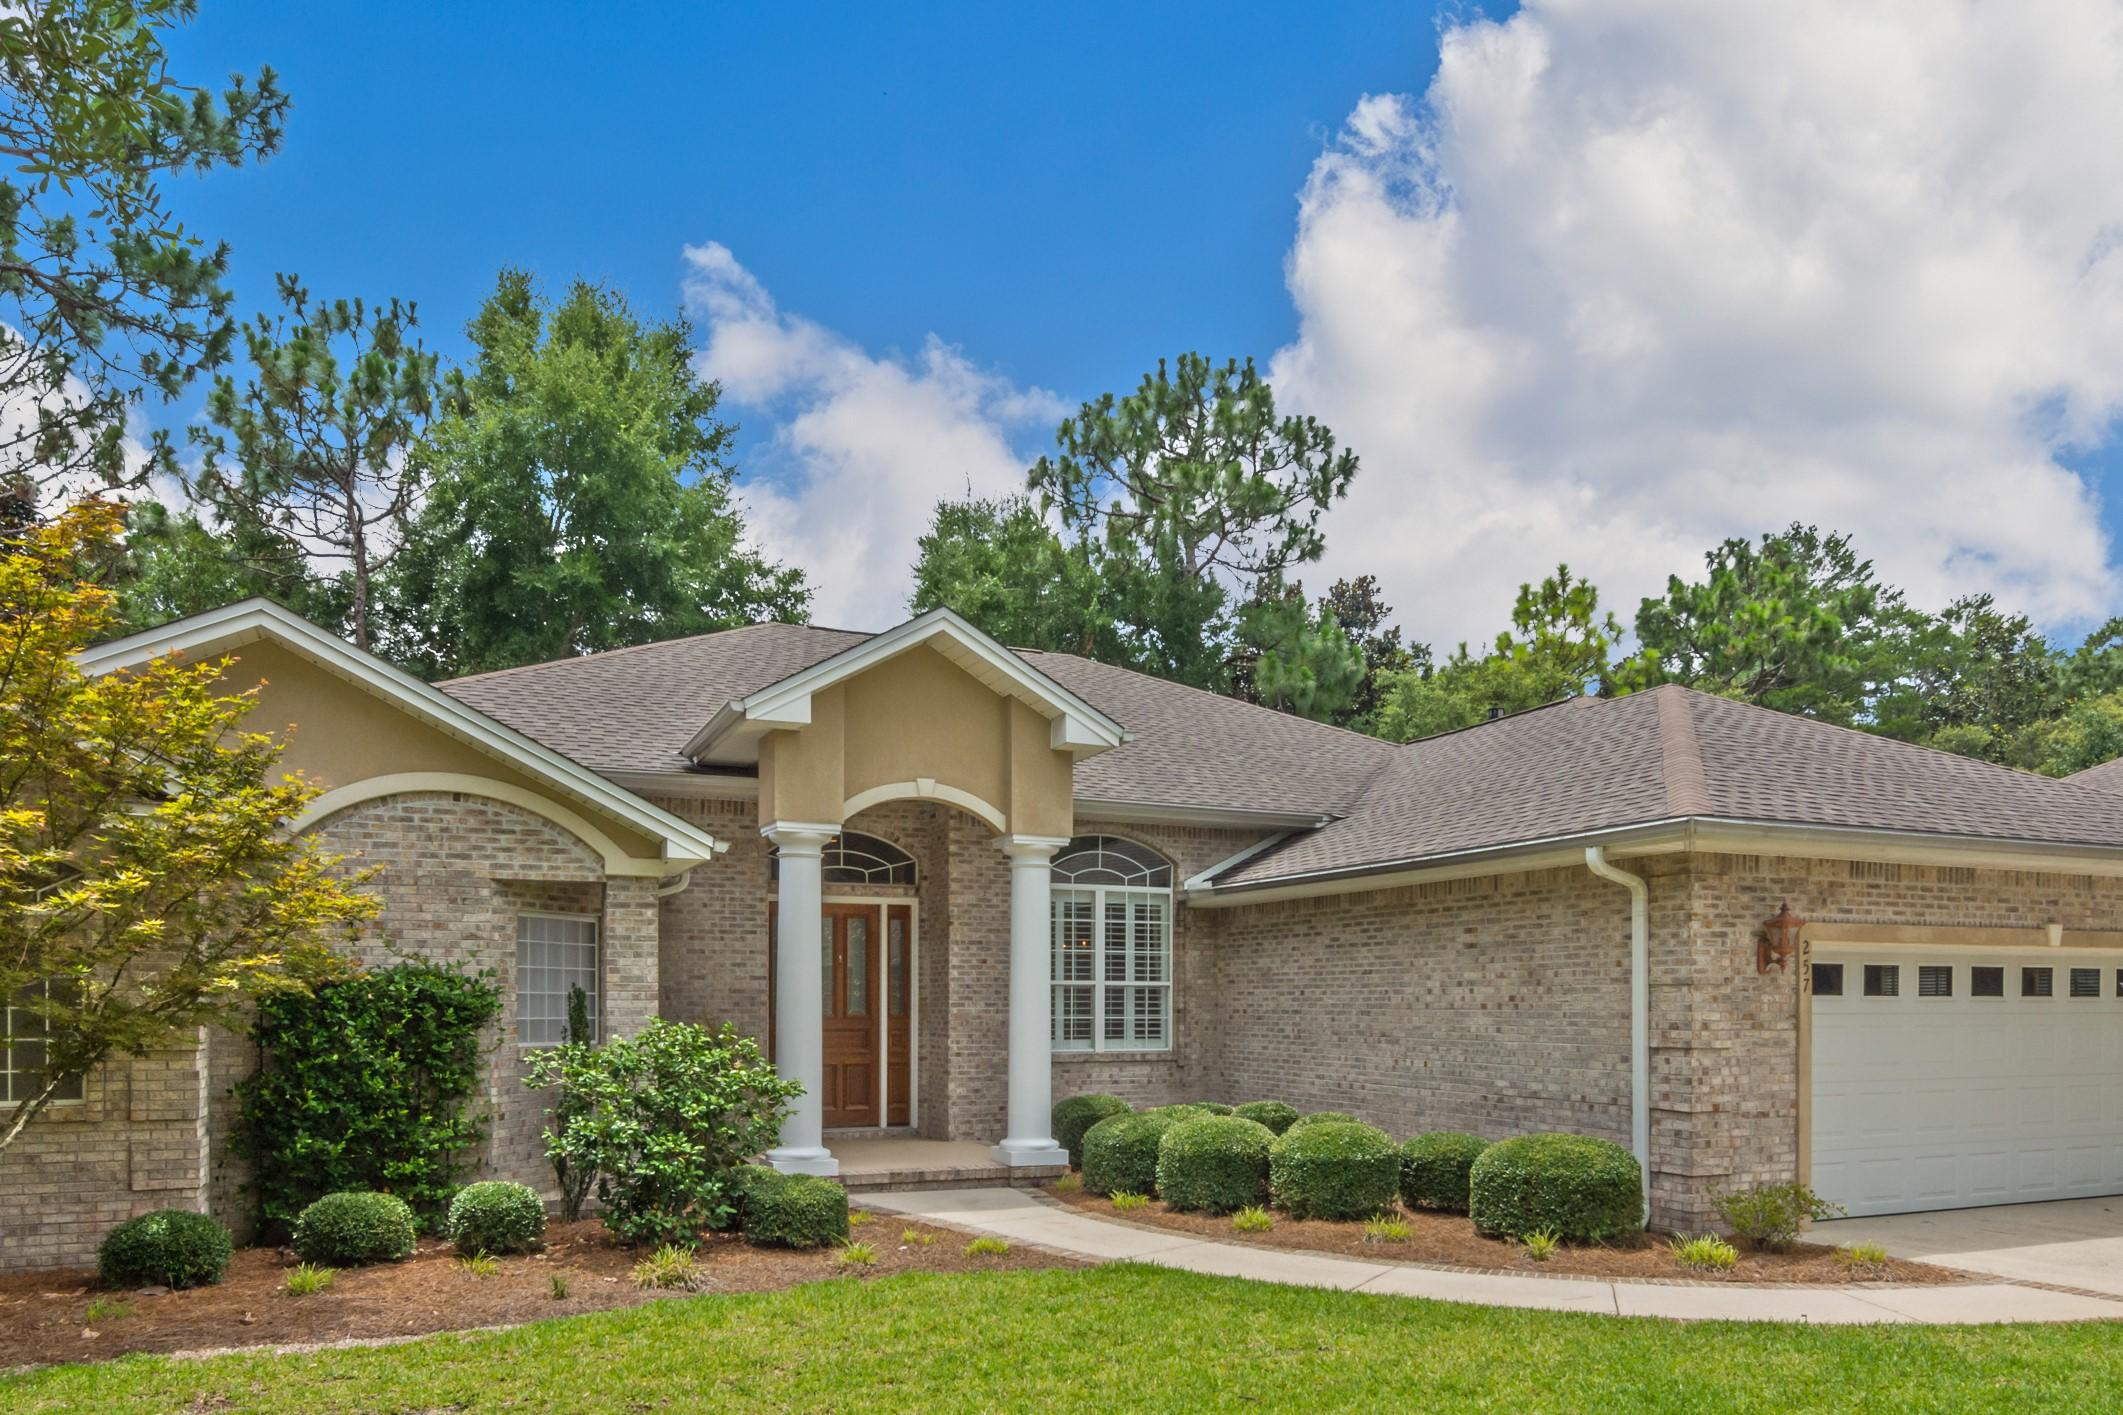 Photo of home for sale at 257 Sweetwater, Niceville FL